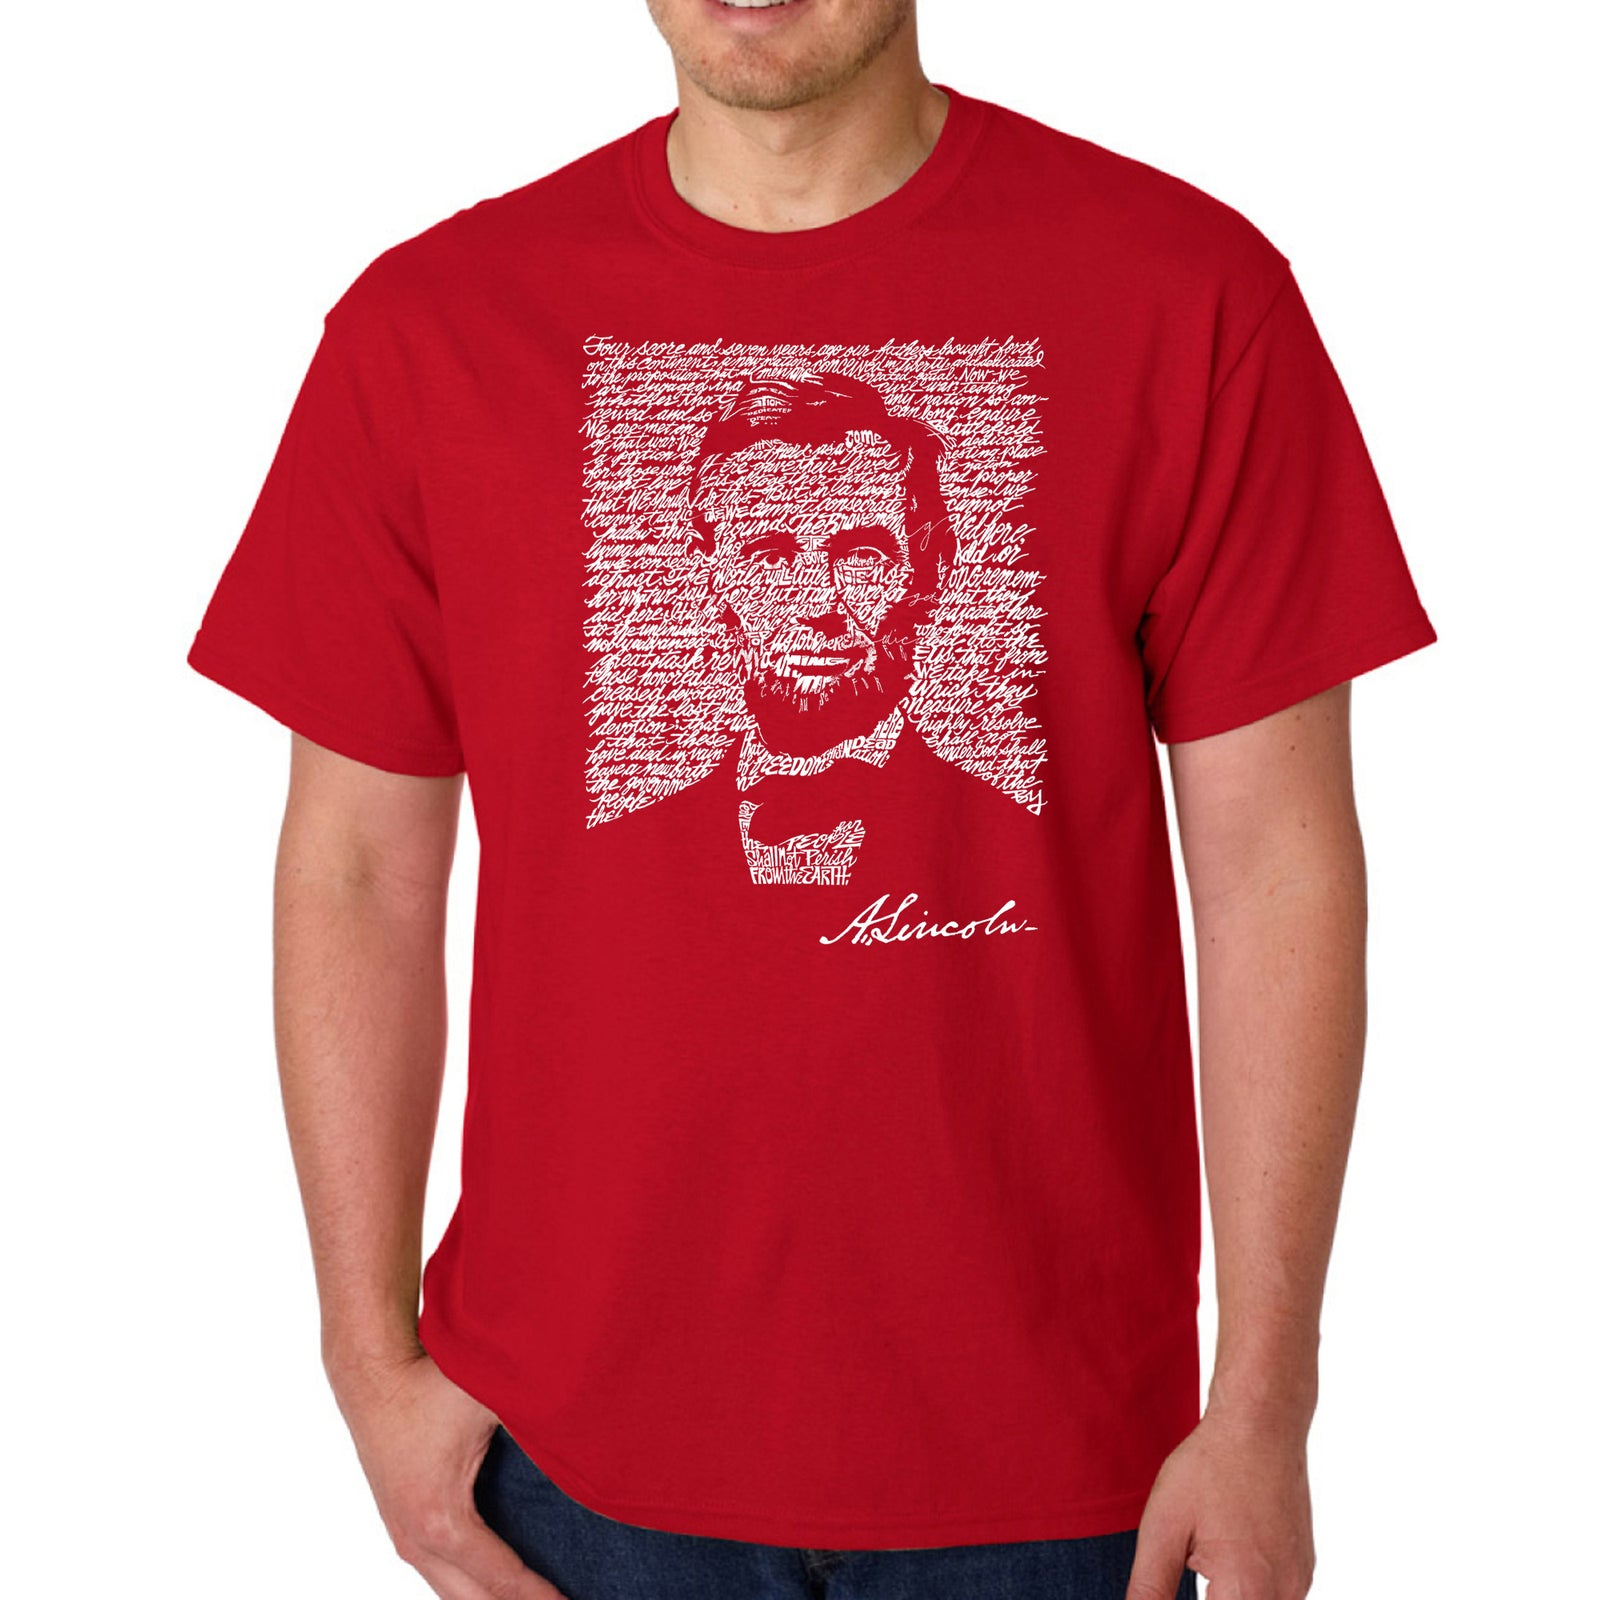 Men's T-shirt - ABRAHAM LINCOLN - GETTYSBURG ADDRESS